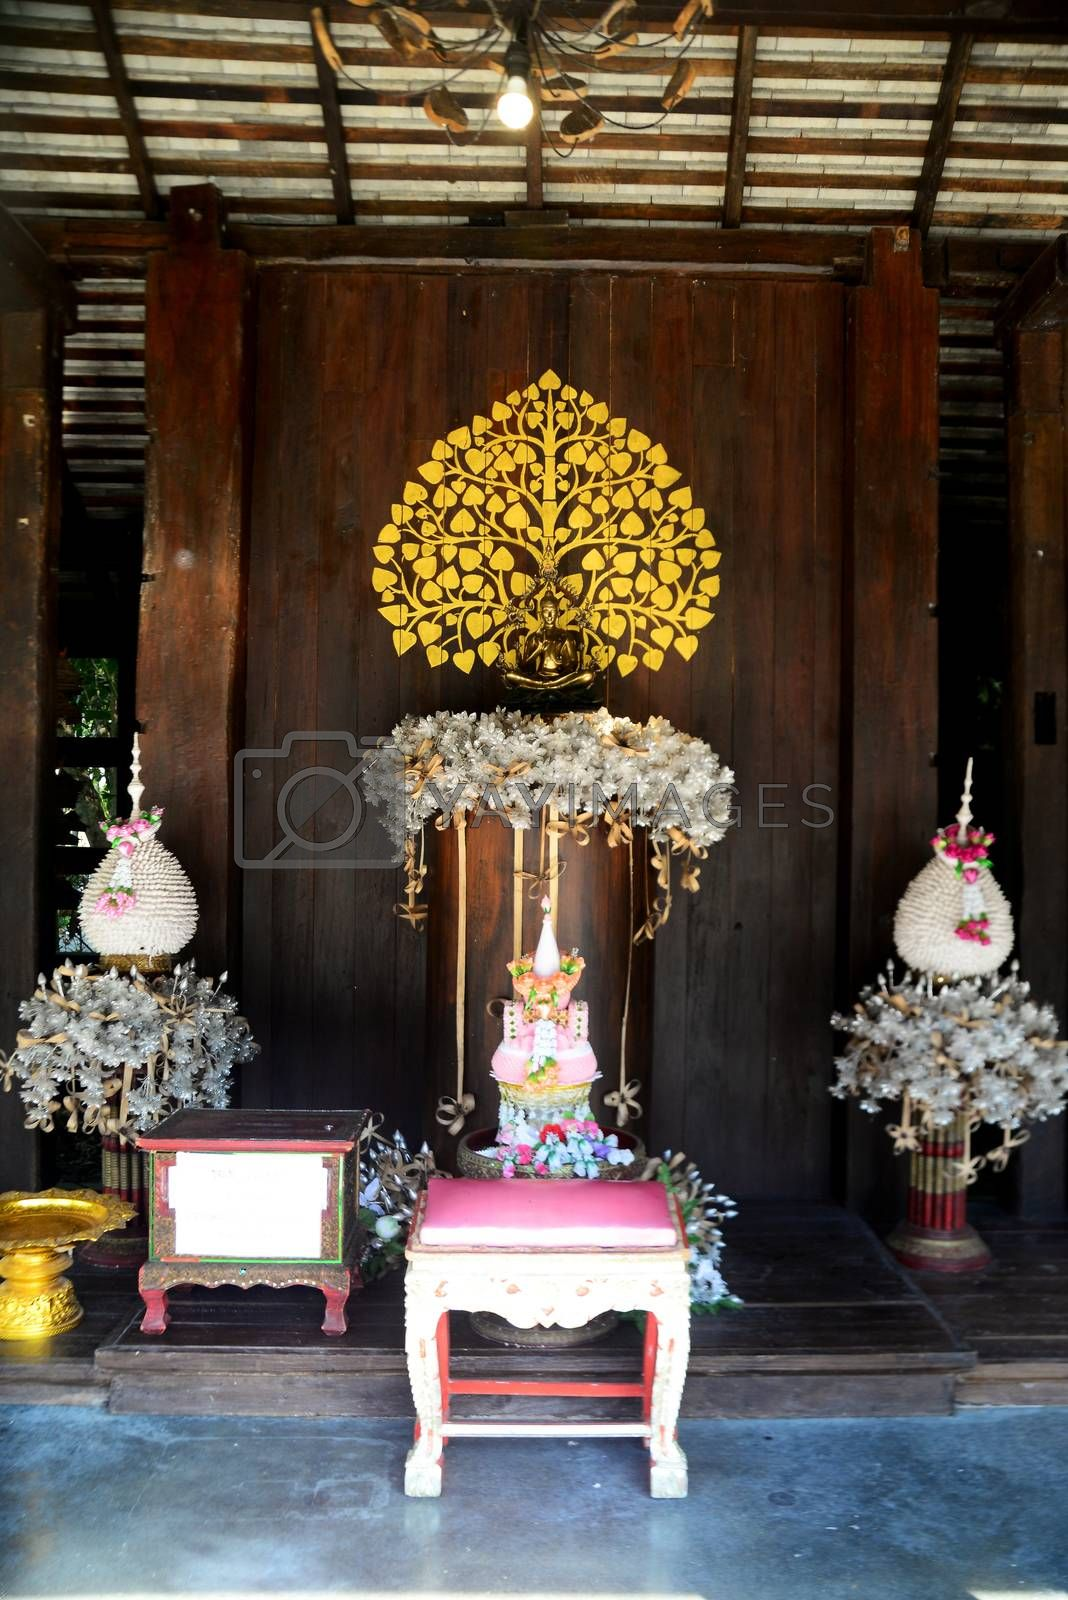 CHIANGRAI, THAILAND - 22 December, 2019 : Cherntawan International Meditation Center, This meditation center is named after one of Thailand's most famous Buddhist monks by W. Vajiramedhi